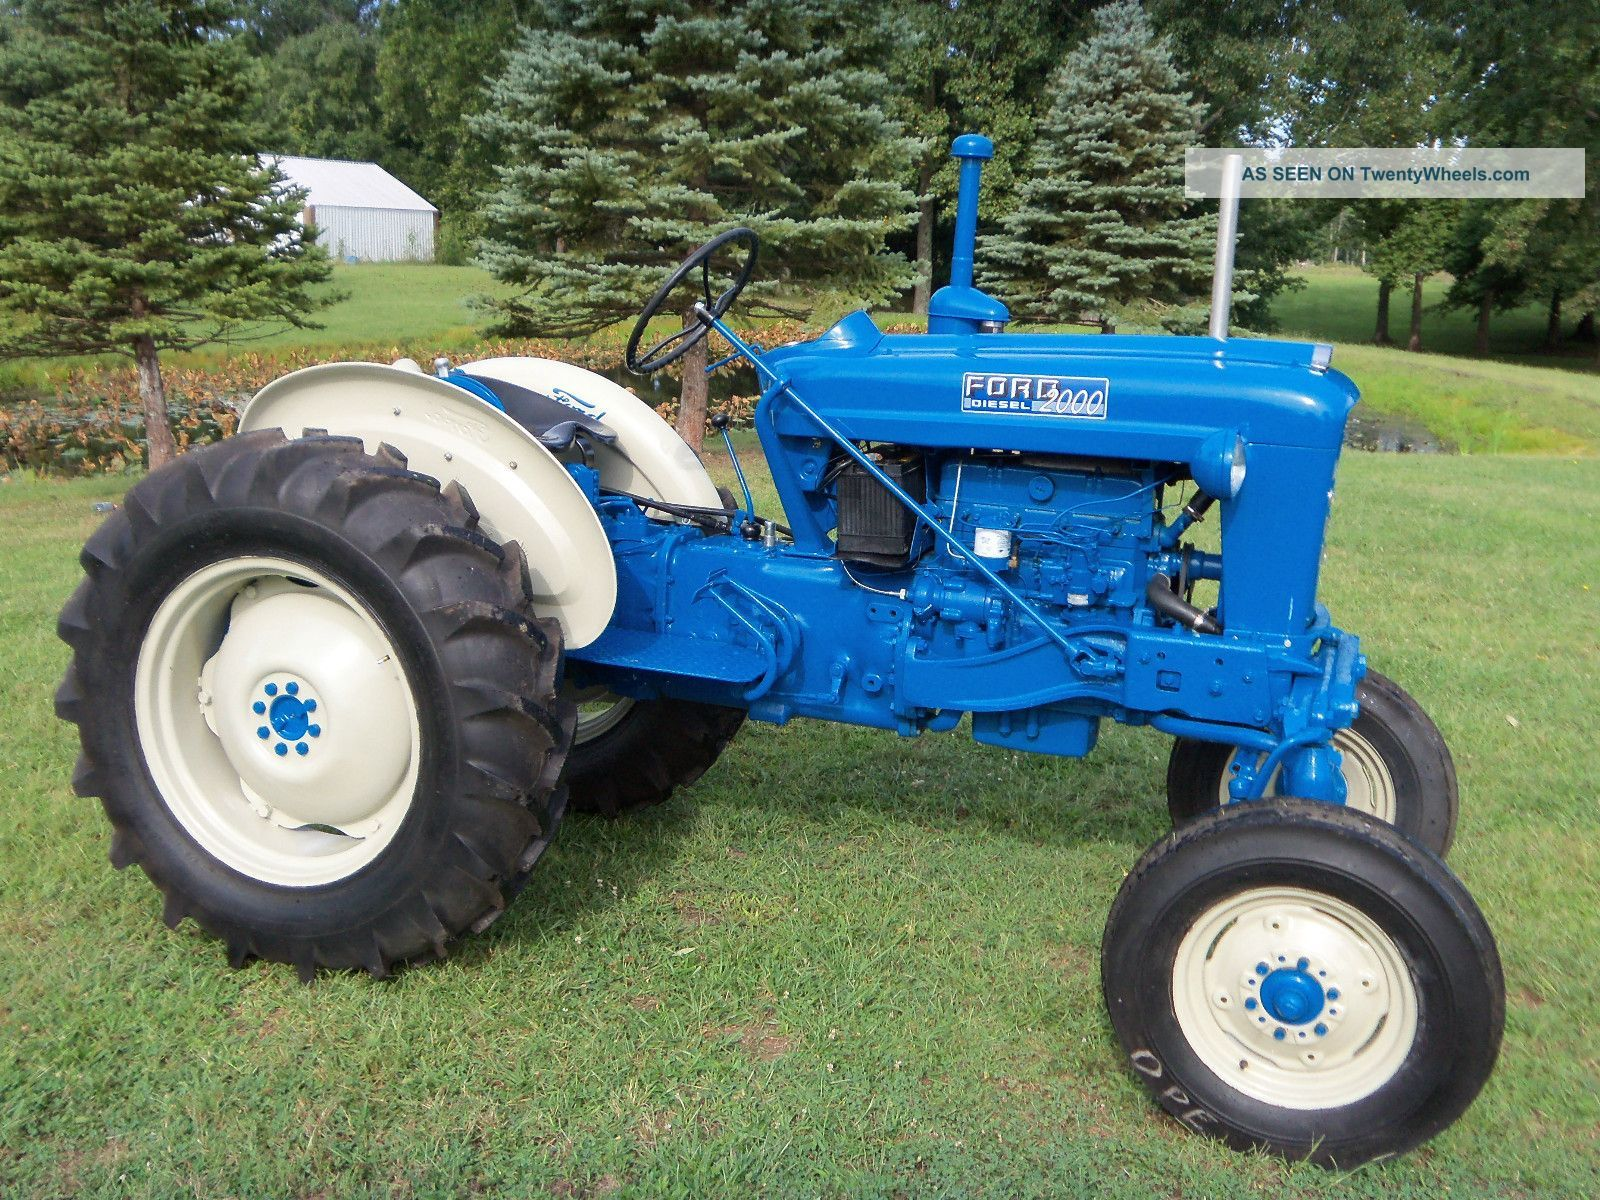 Restored Antique Tractors : Ford offset tractor diesel restored antique